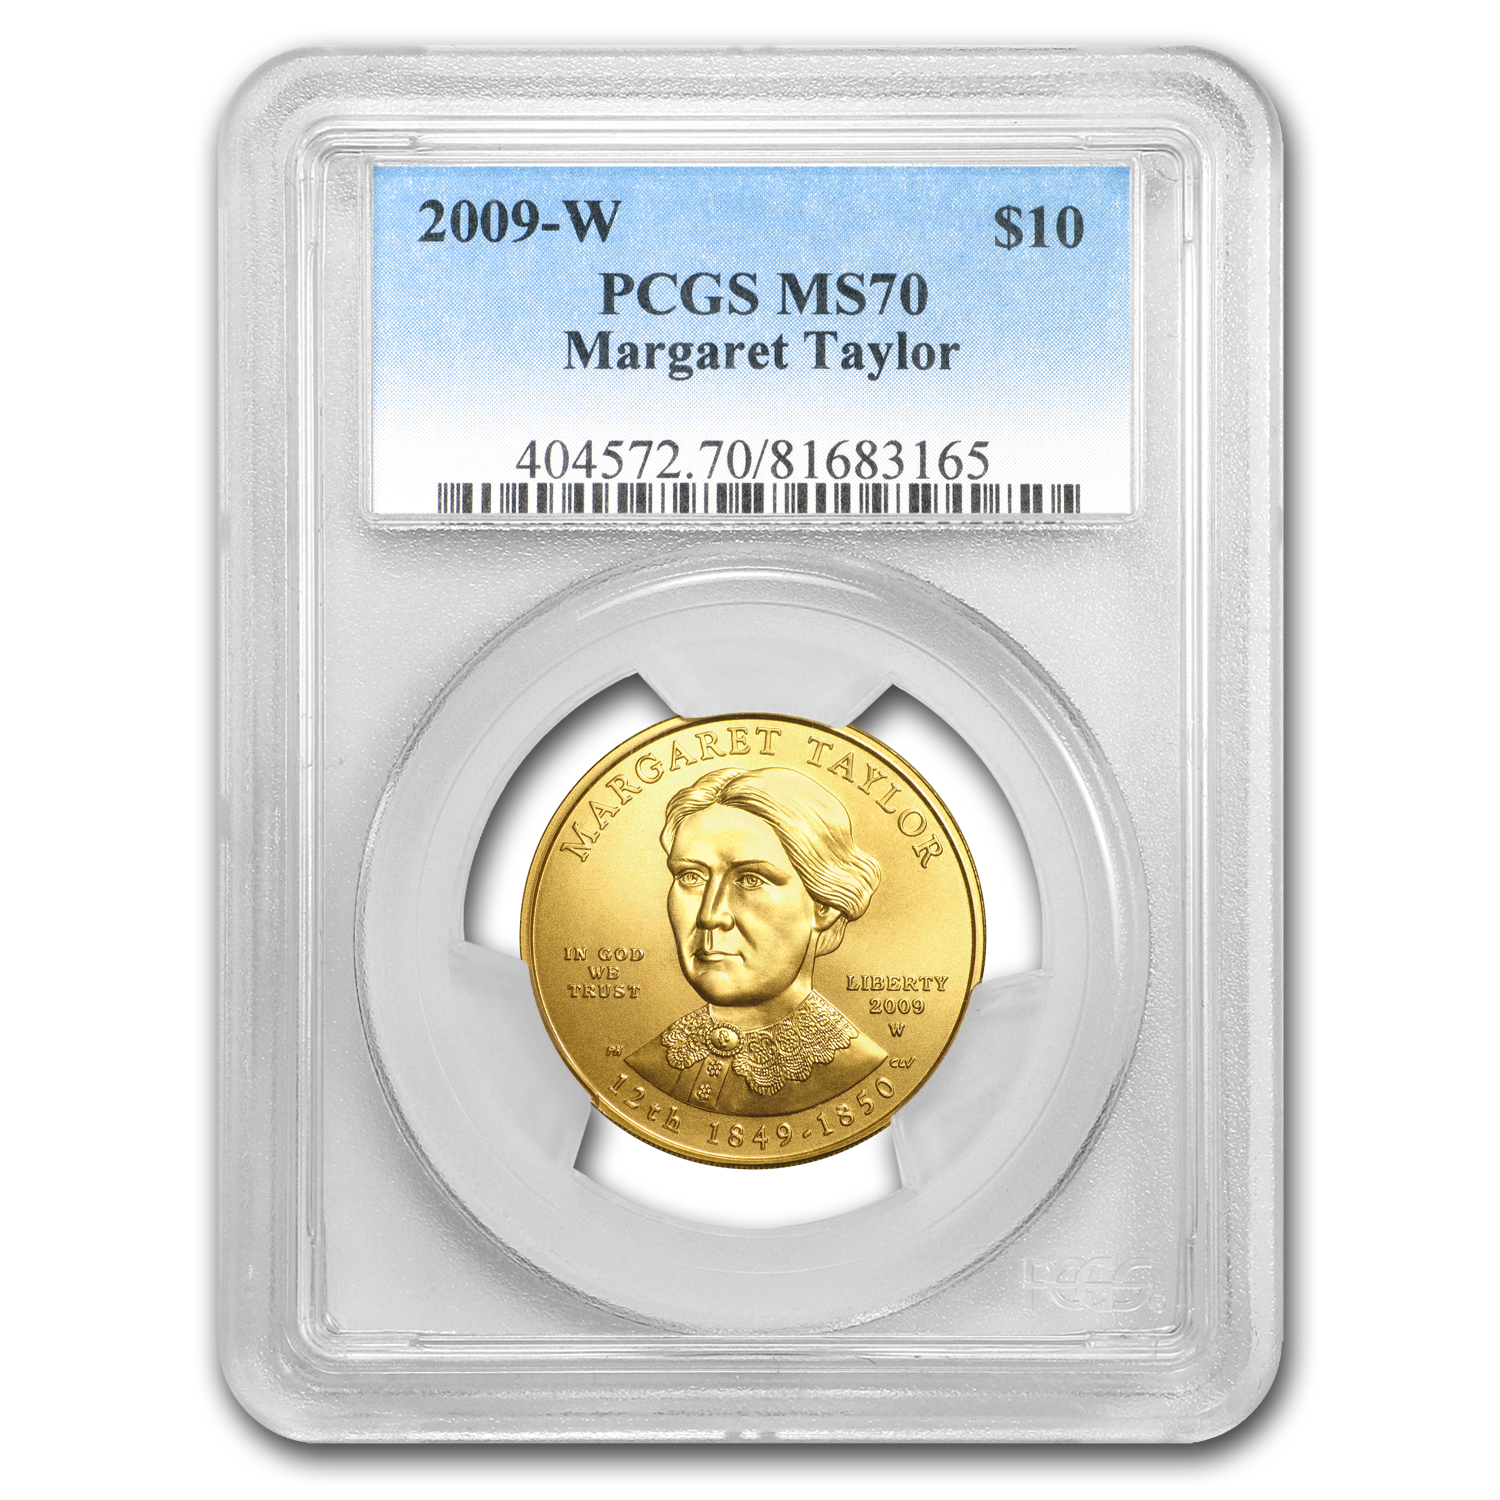 2009-W 1/2 oz Gold Margaret Taylor MS-70 PCGS (First Strike)